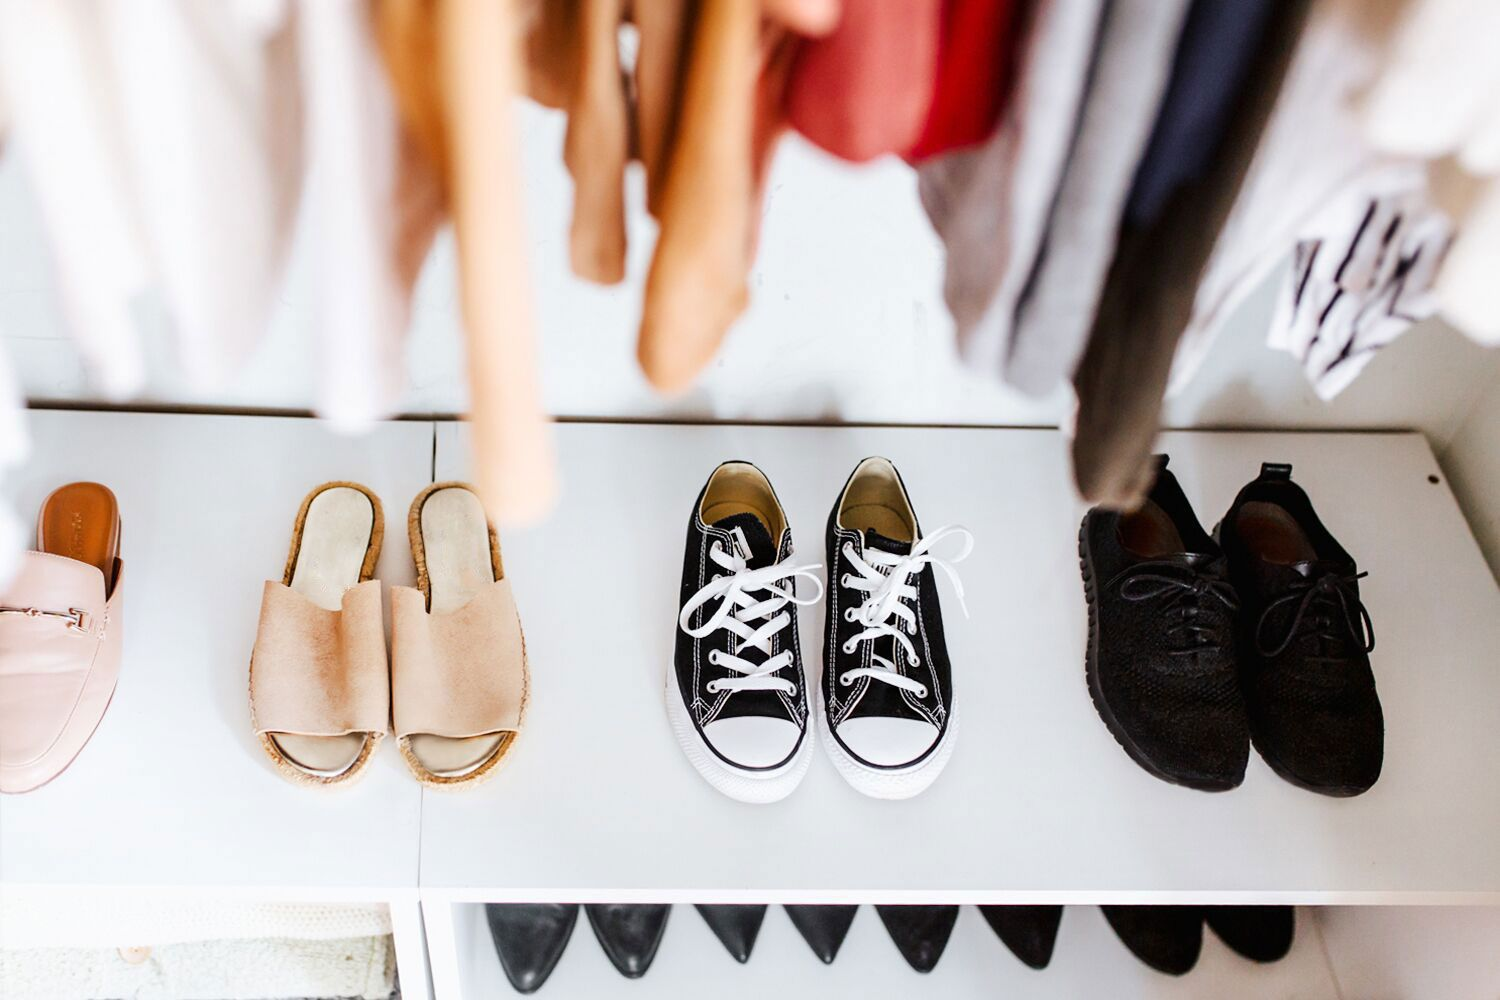 Shoes neatly lined up